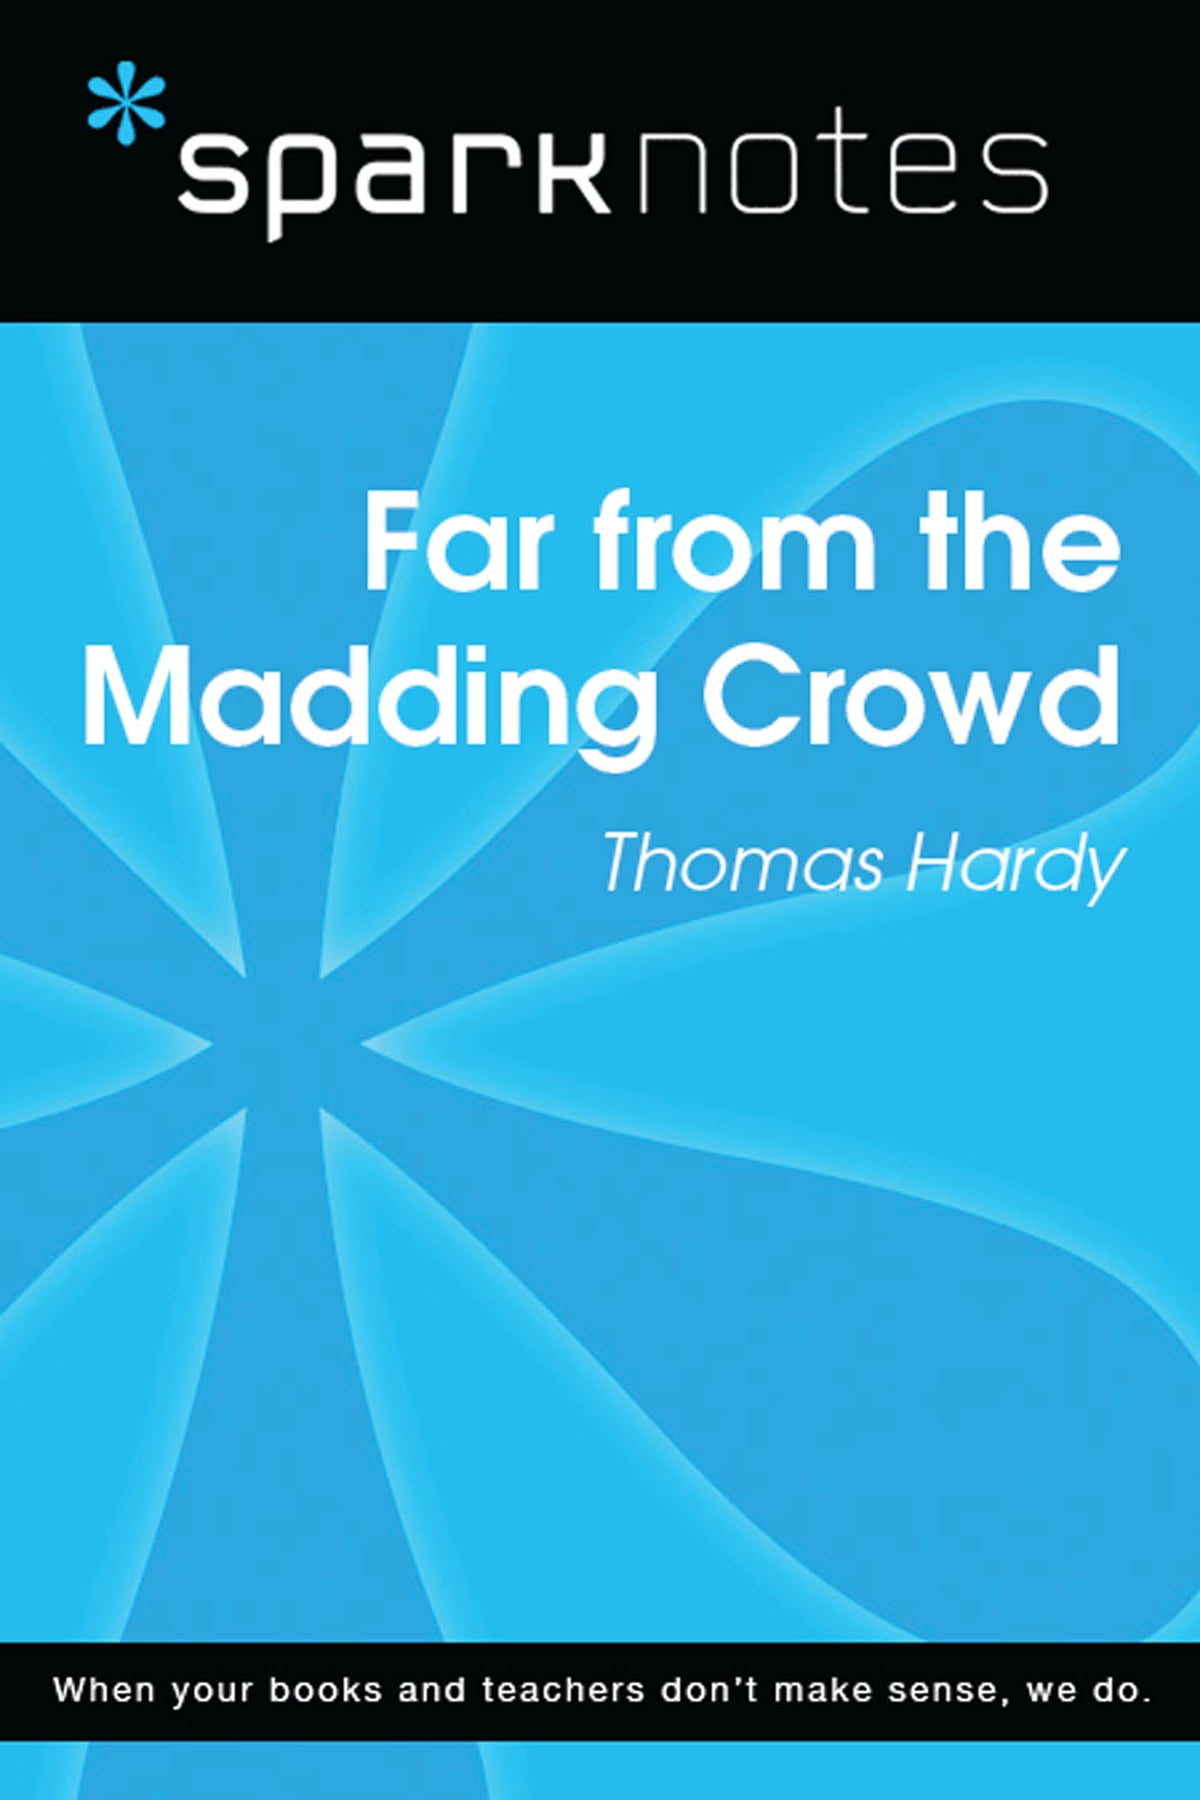 Far from the Madding Crowd (SparkNotes Literature Guide) eBook by